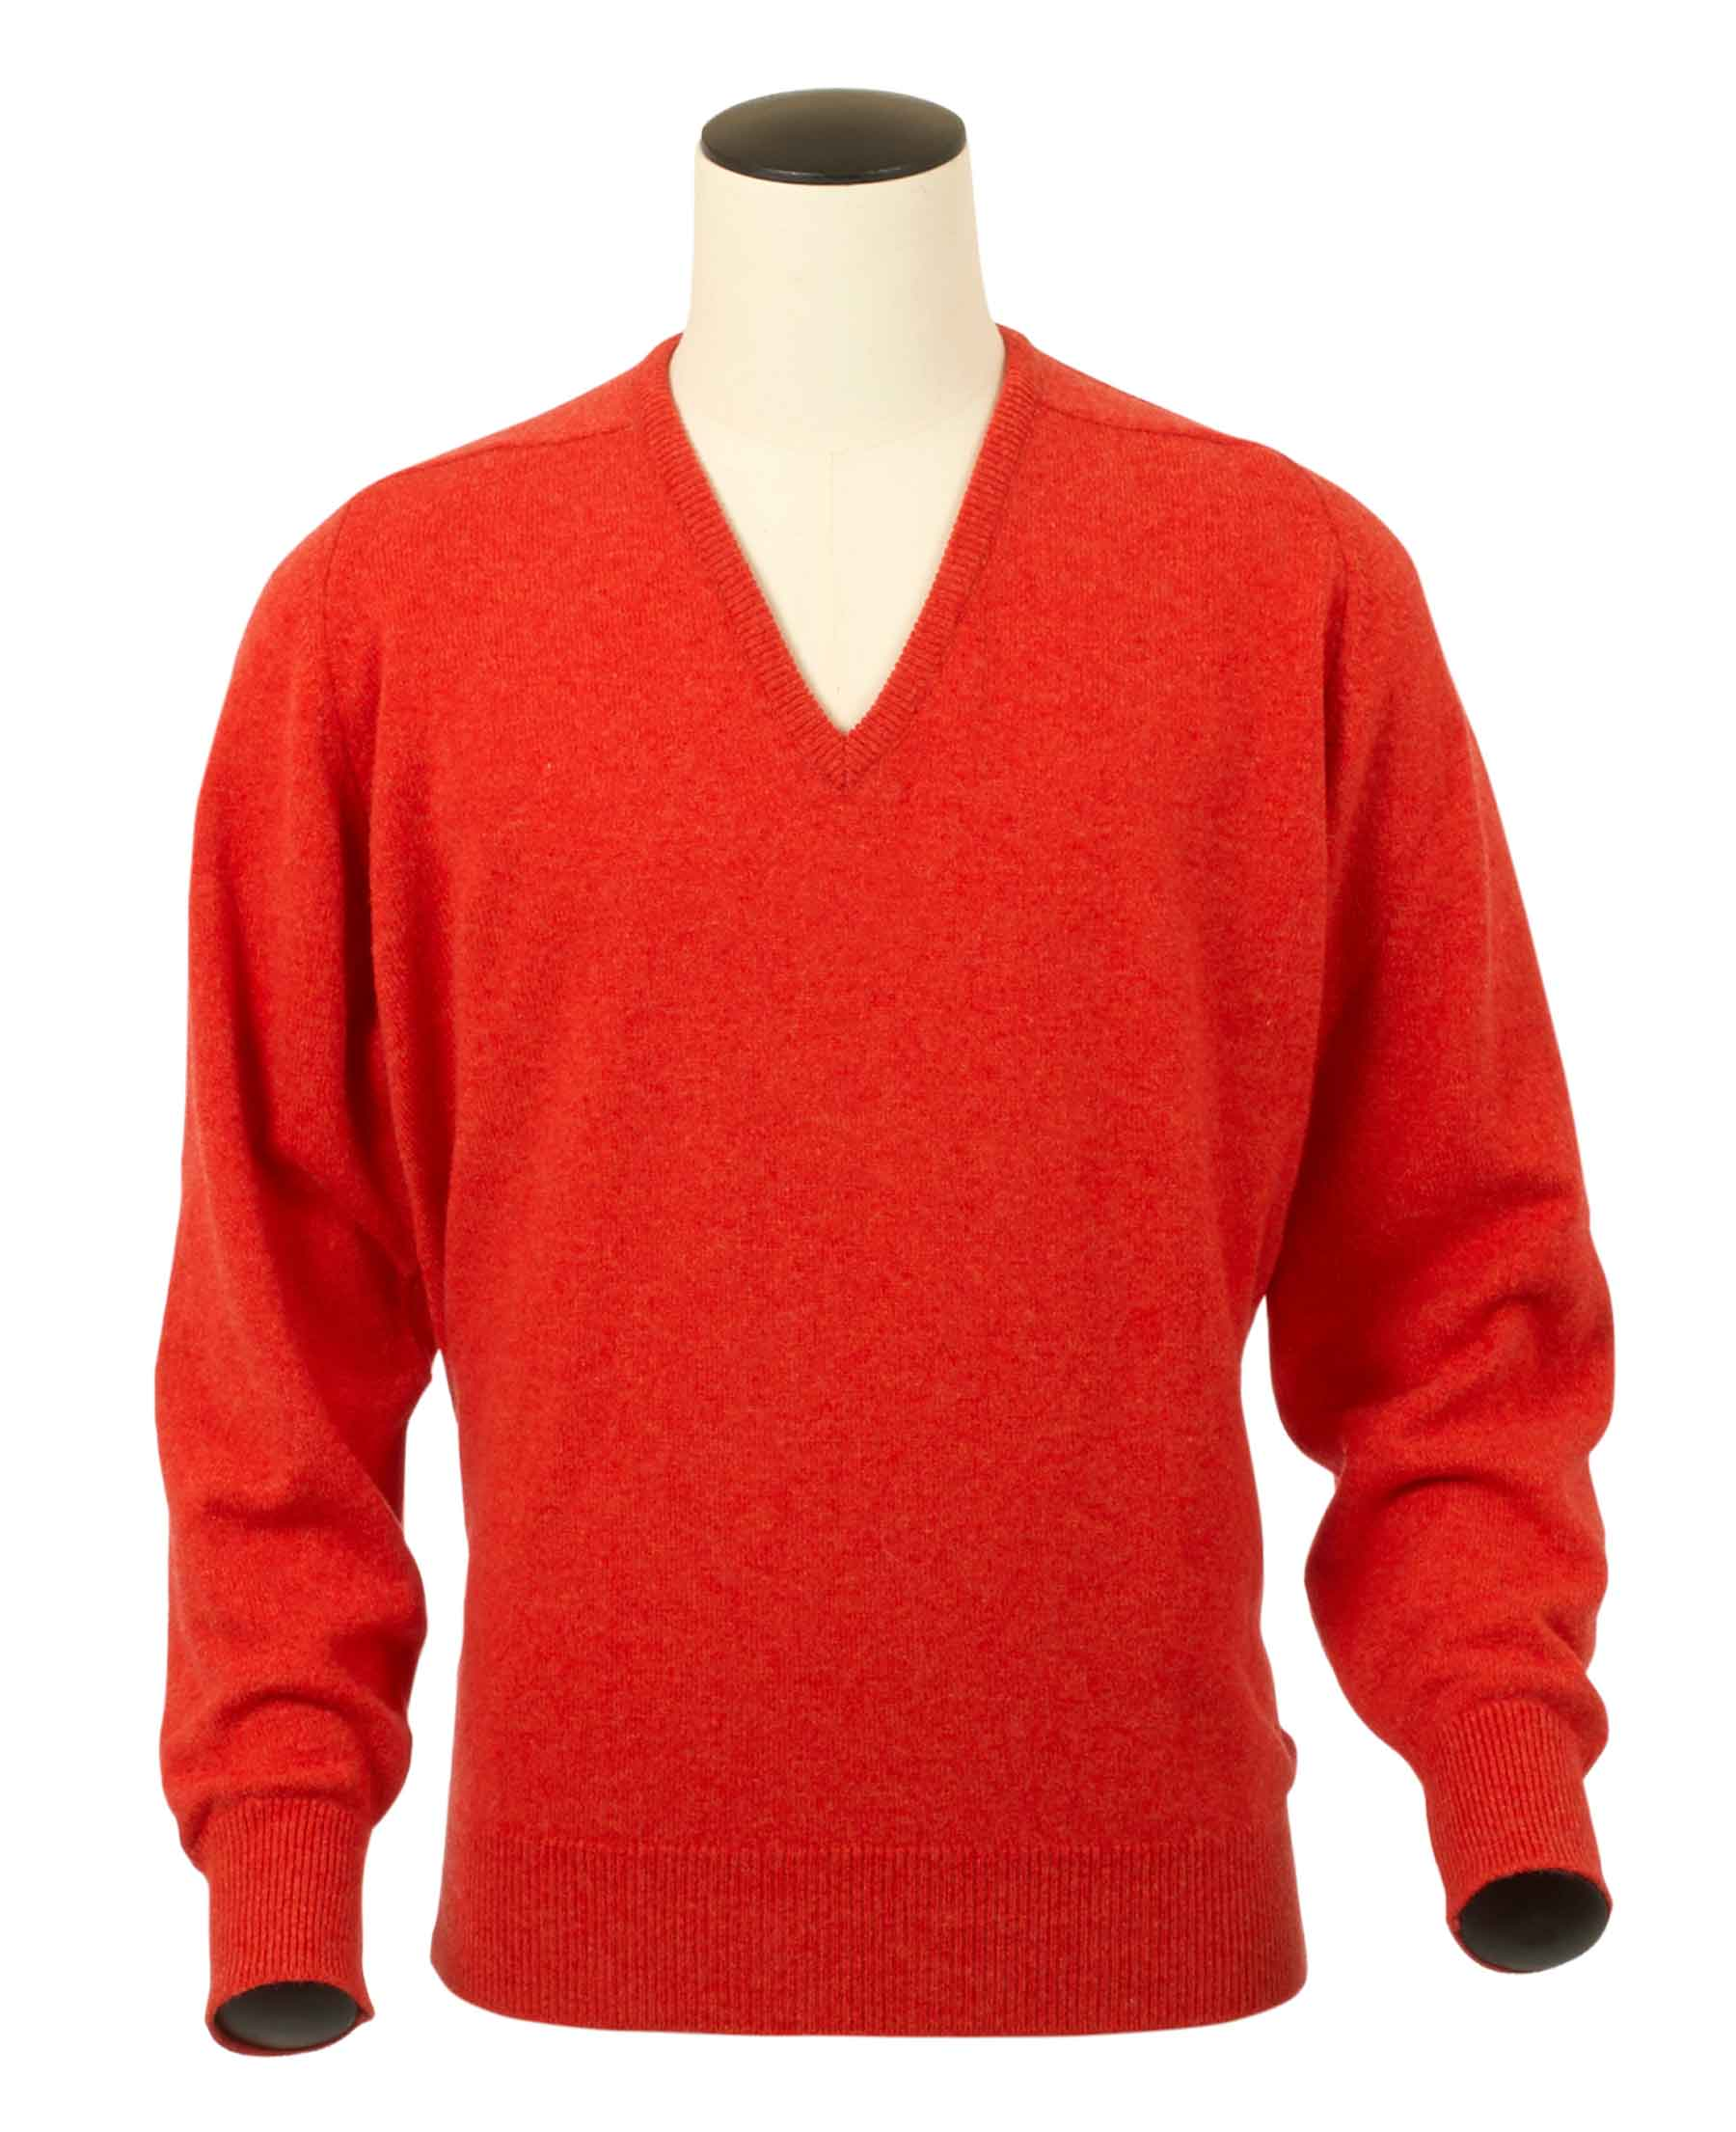 pull col-v, couleur inferno en 100% lambswool,Scott - Vêtements laine geelong